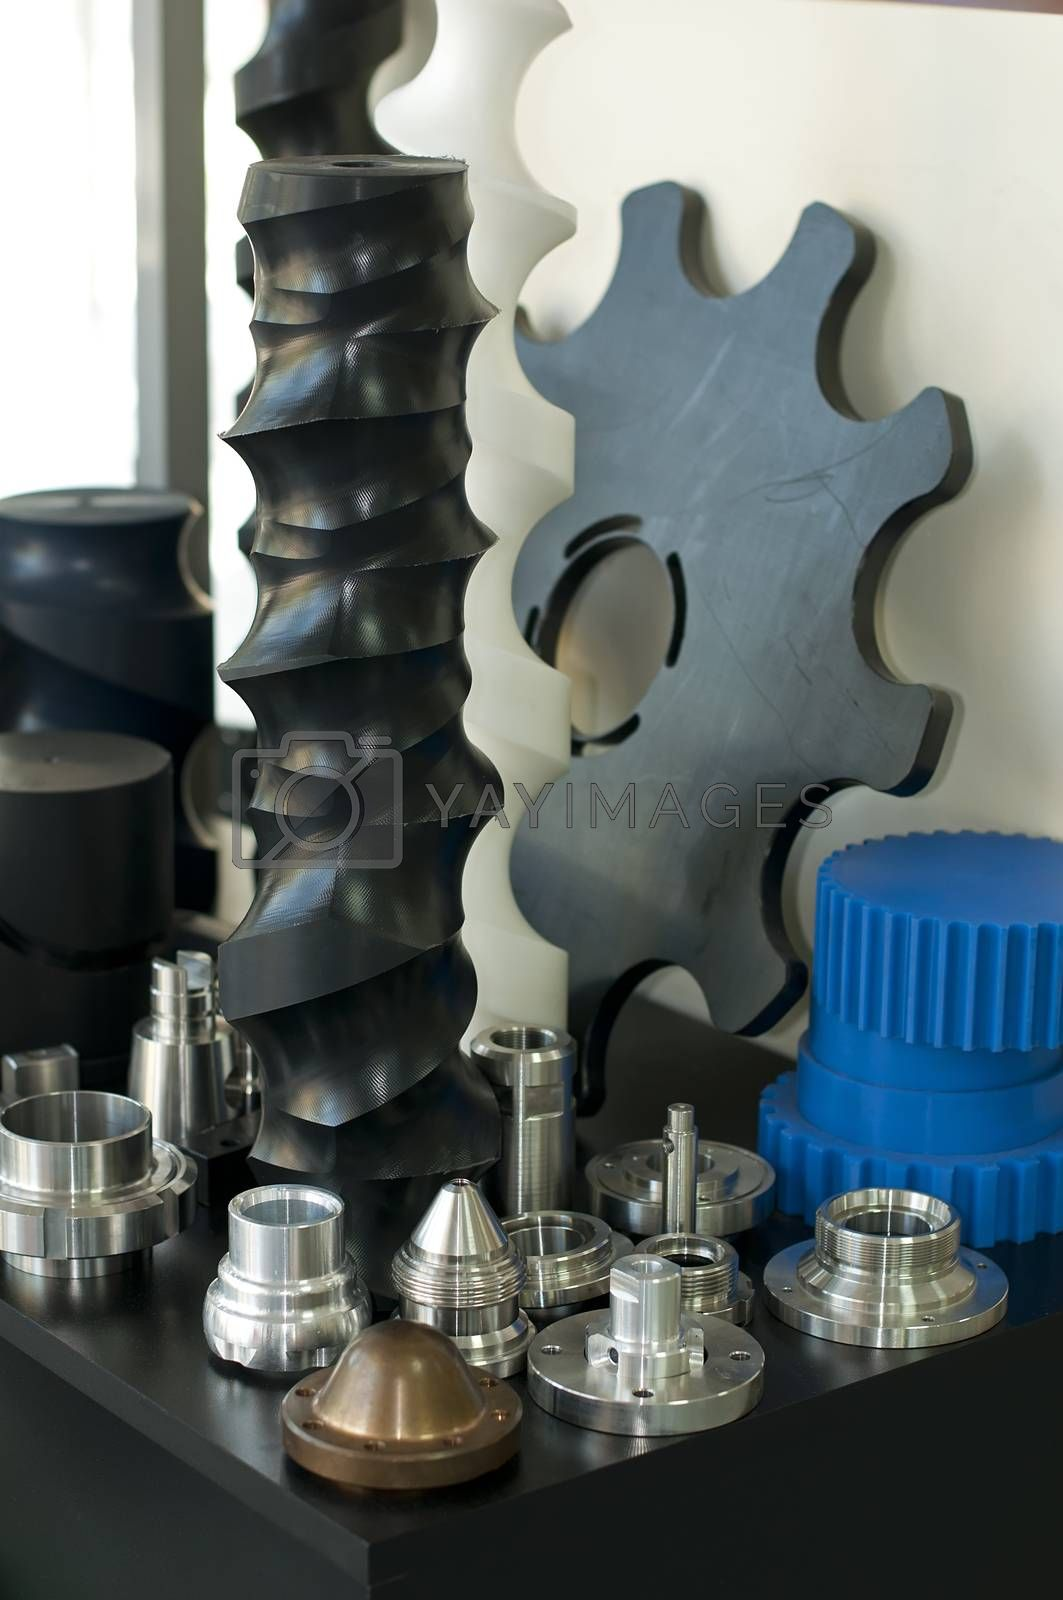 Plastic and metal machine parts. Vertical imagel